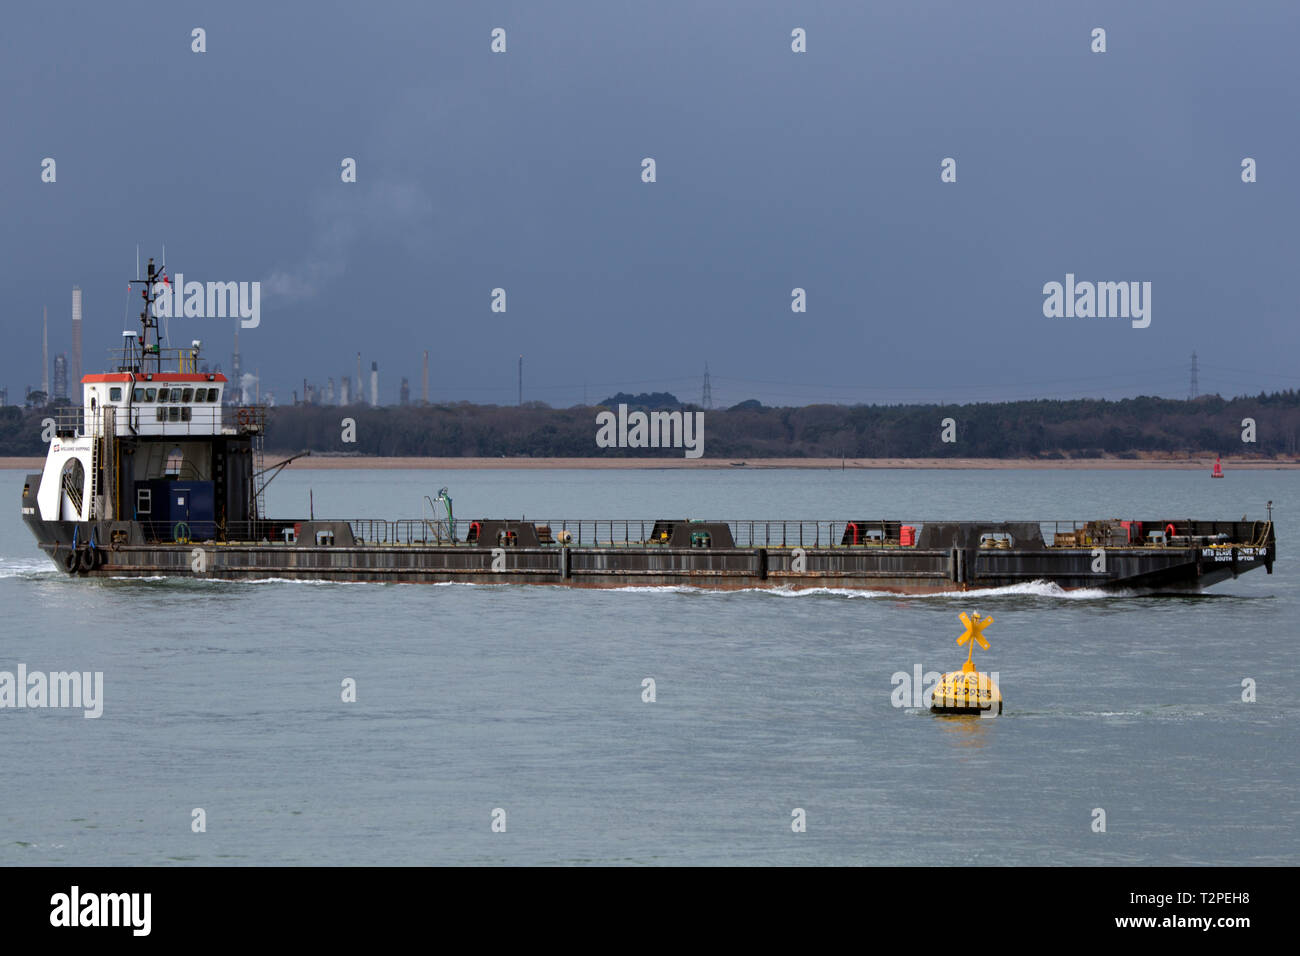 Blade,Runner,Two,2,specialist,ship,for,carrying,wind,farm,blades,offshore,wind,farms,shipping,Vestas,The Solent,Southampton,Isle of Wight,England,UK, - Stock Image